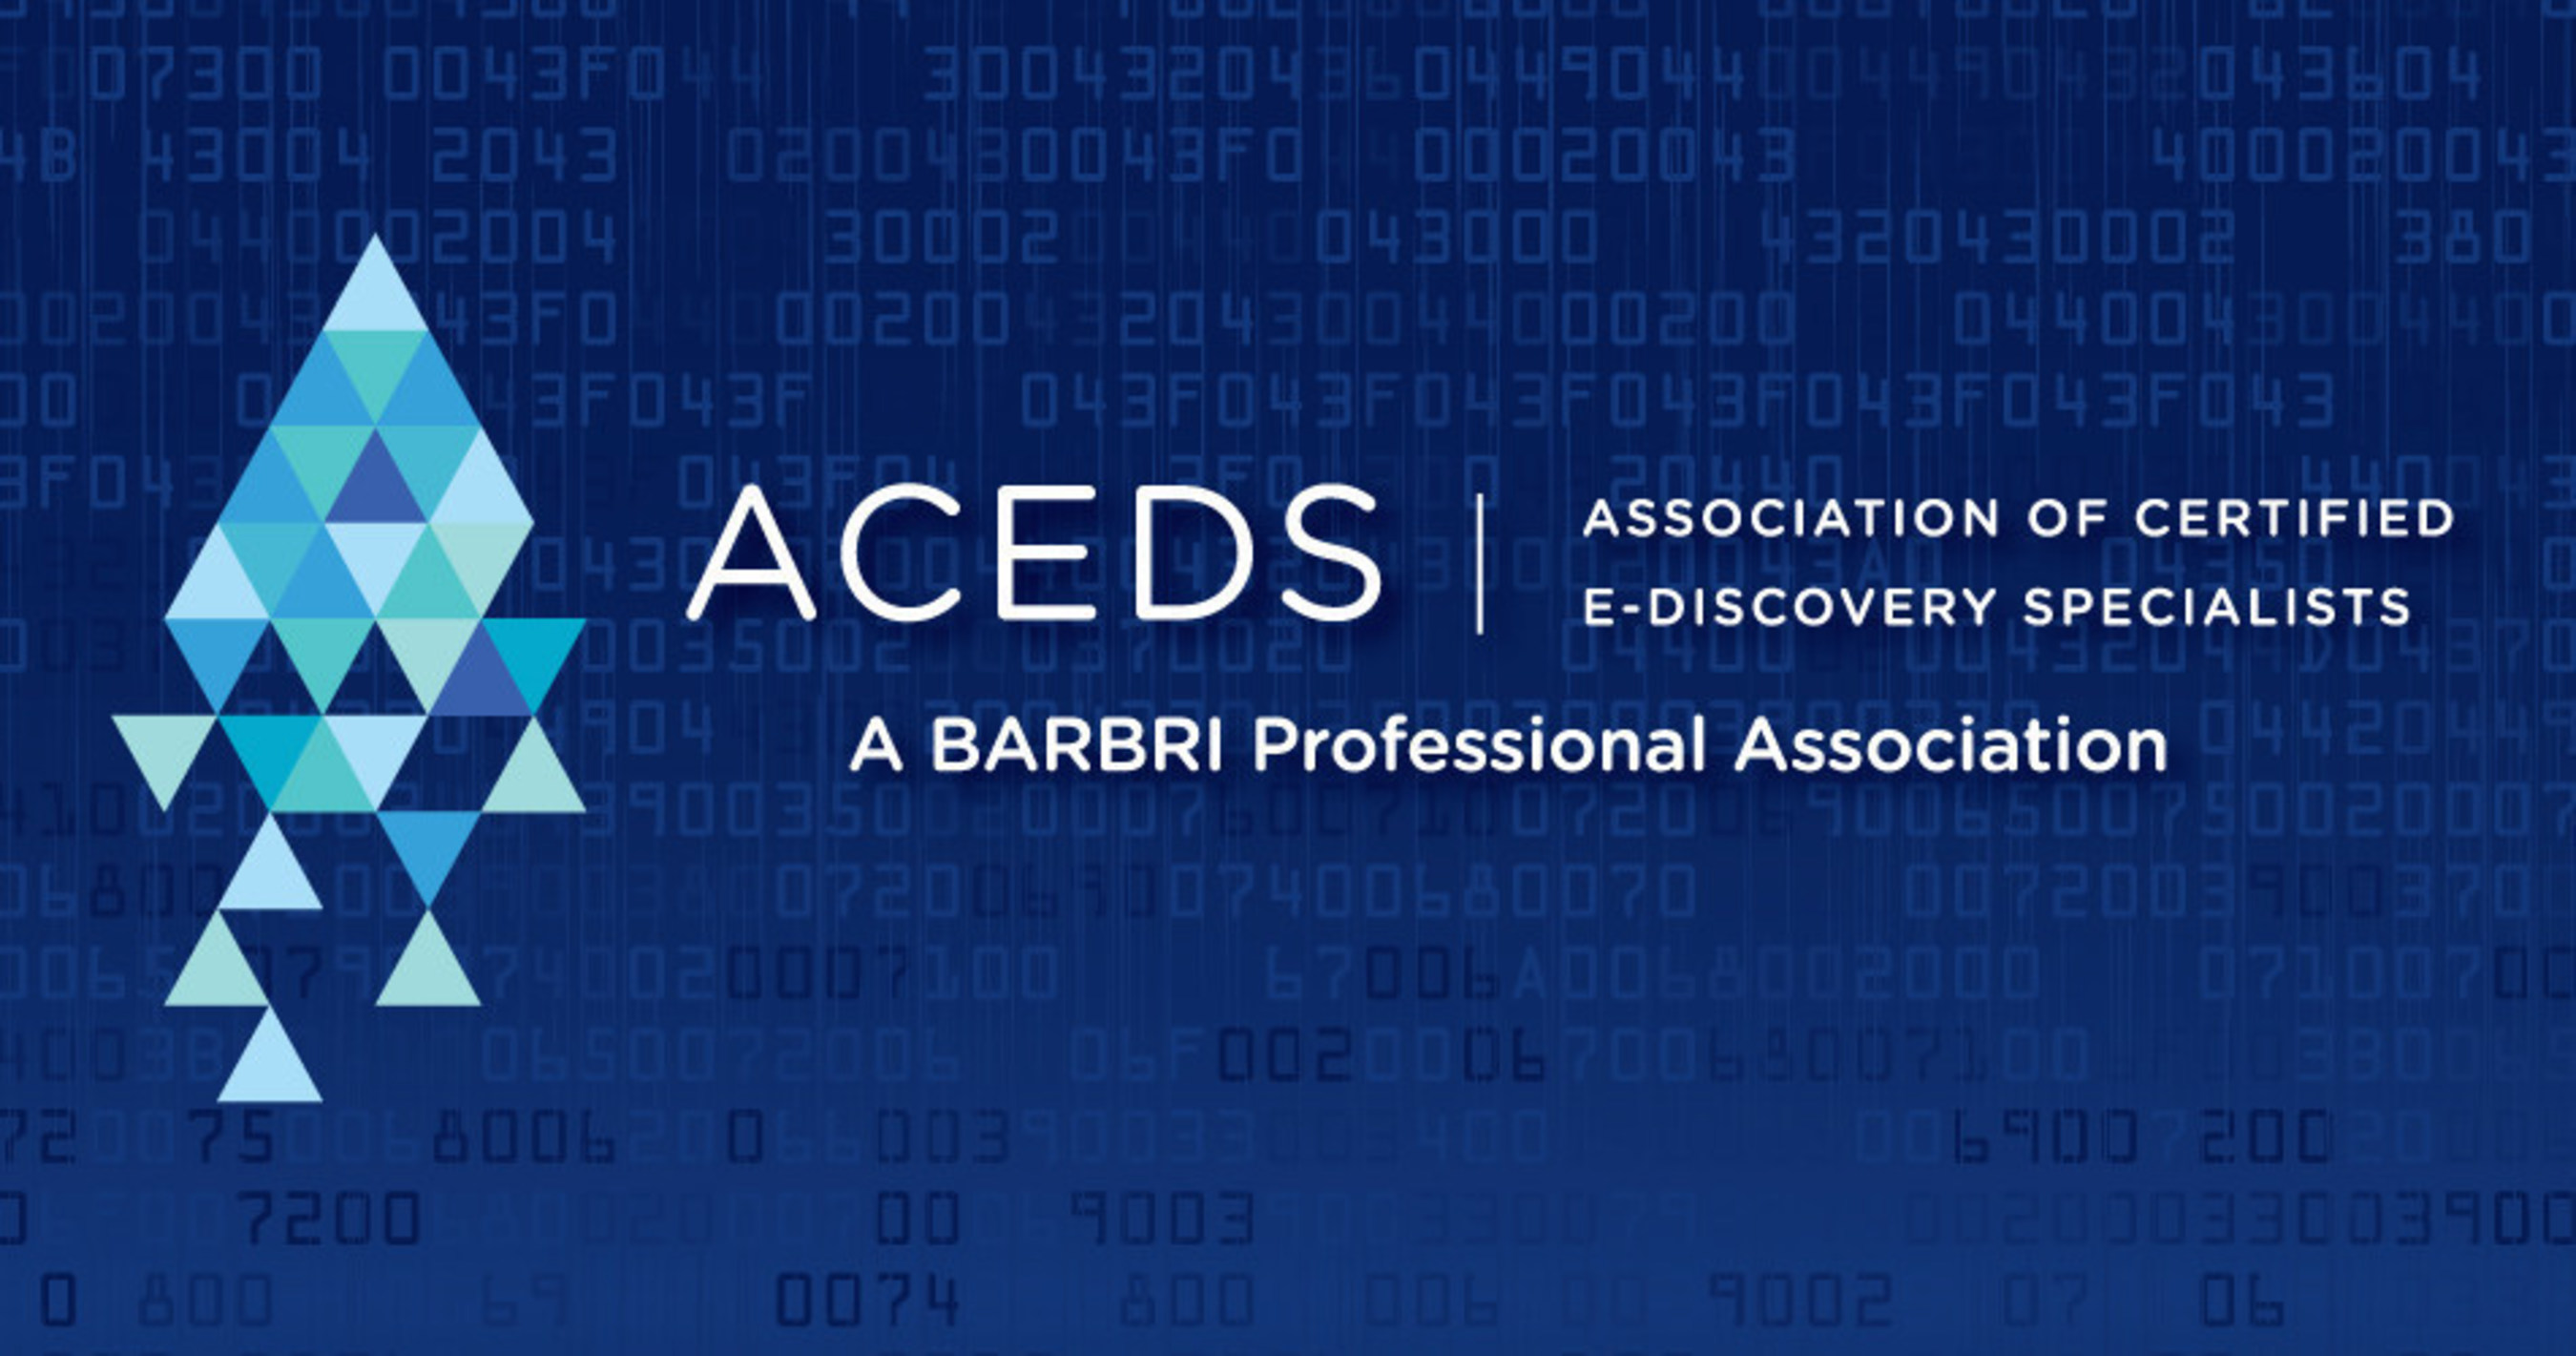 ACEDS launches first-ever international chapter in UK